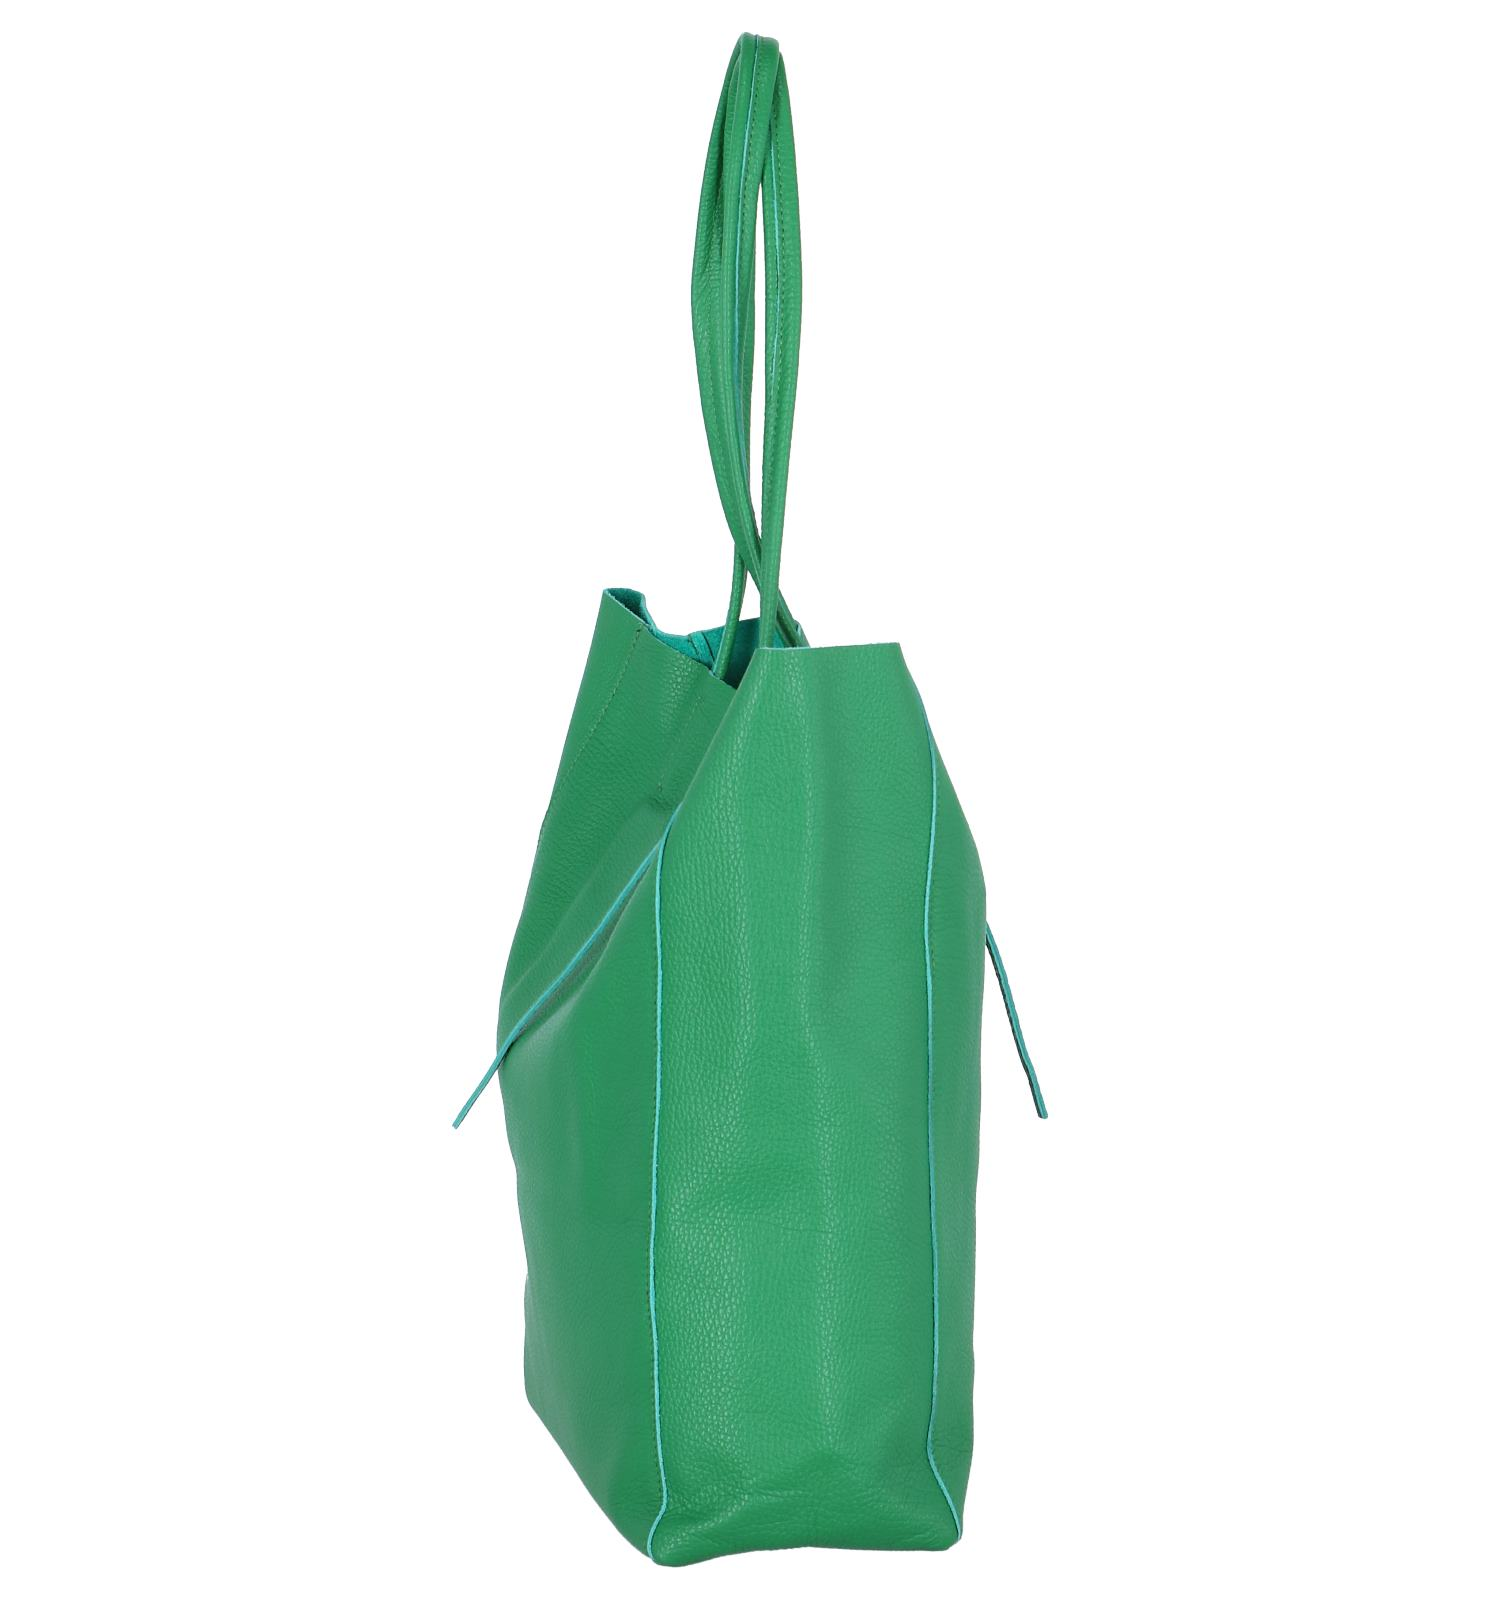 Tas CGroene Dolce Dolce Shopper Dolce Dolce Shopper Shopper Tas Tas CGroene CGroene W2ED9HYI